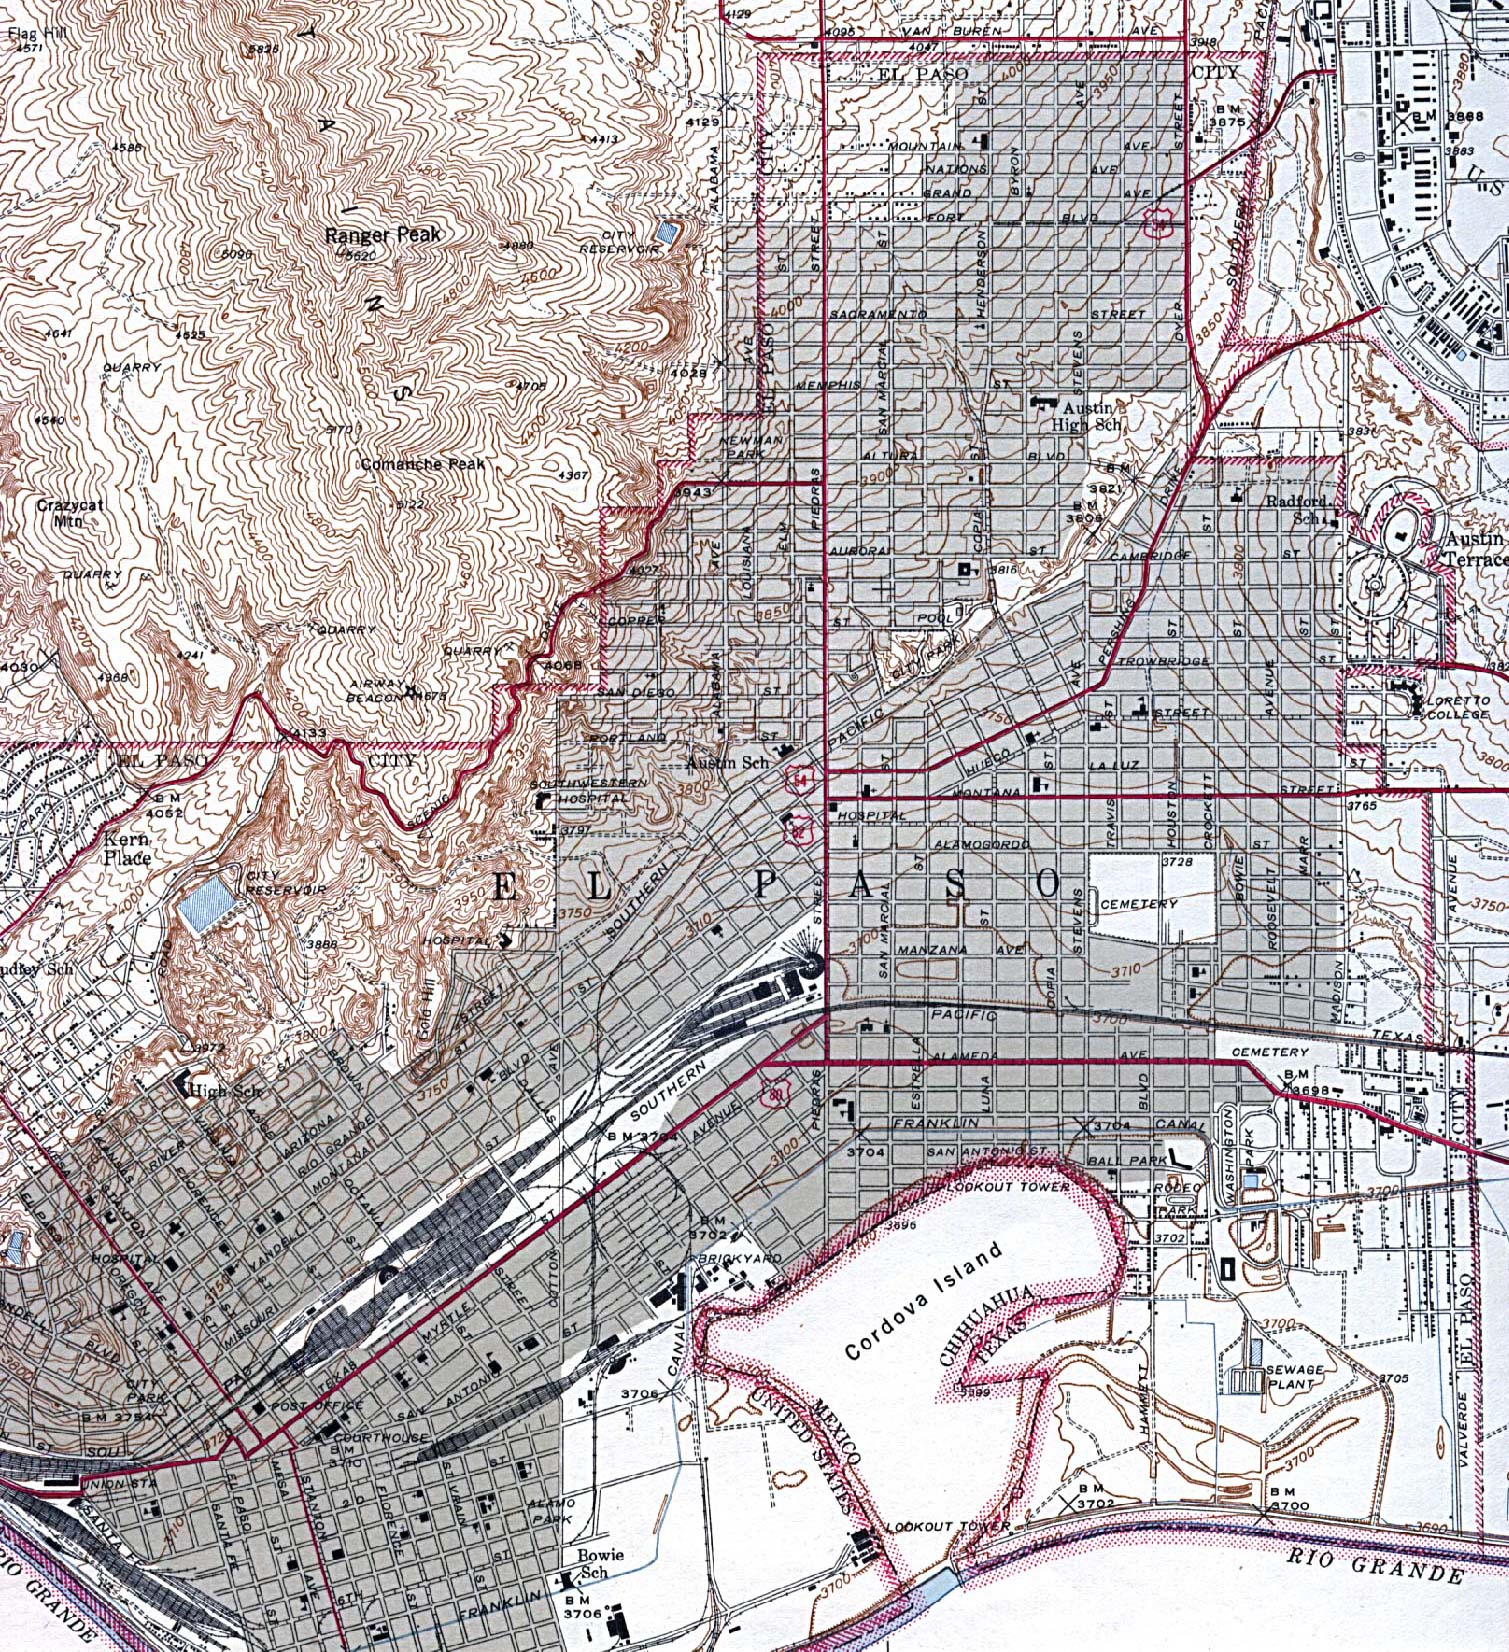 Historical Maps of U.S Cities. El Paso, Texas 1943 Original Scale 1:31,680. U.S. Geological Survey (975K)